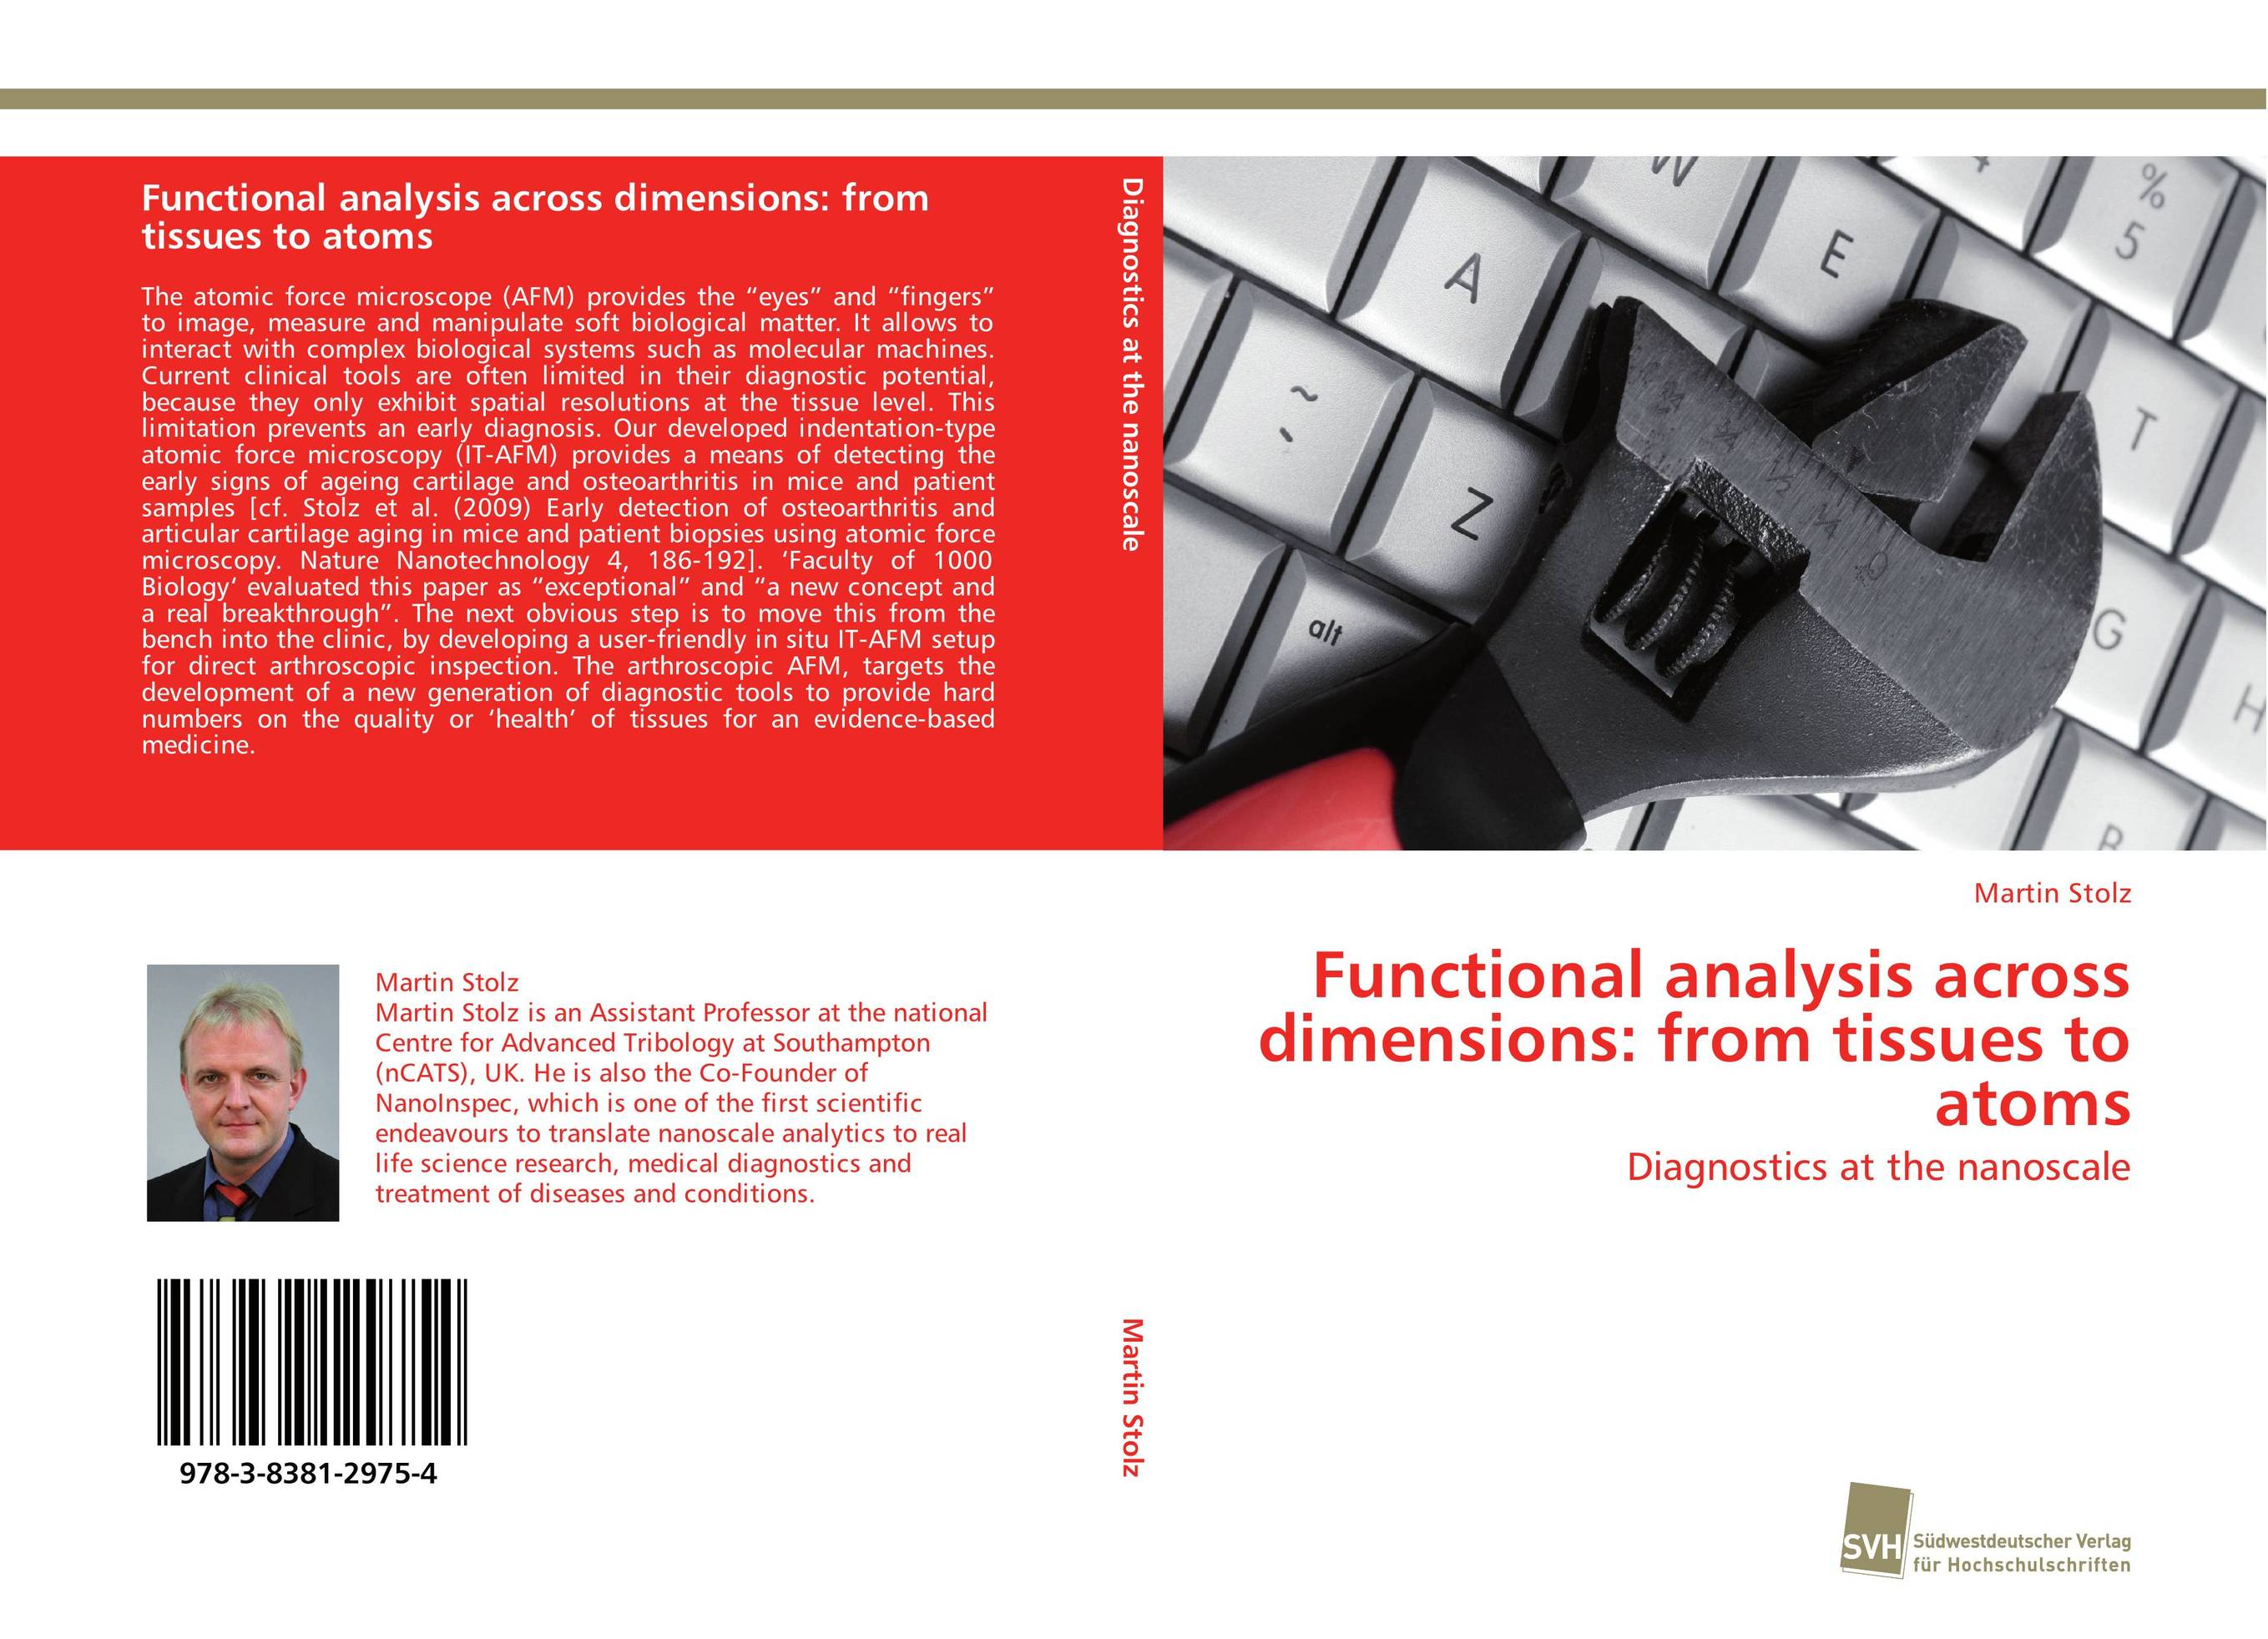 Functional analysis across dimensions: from tissues to atoms